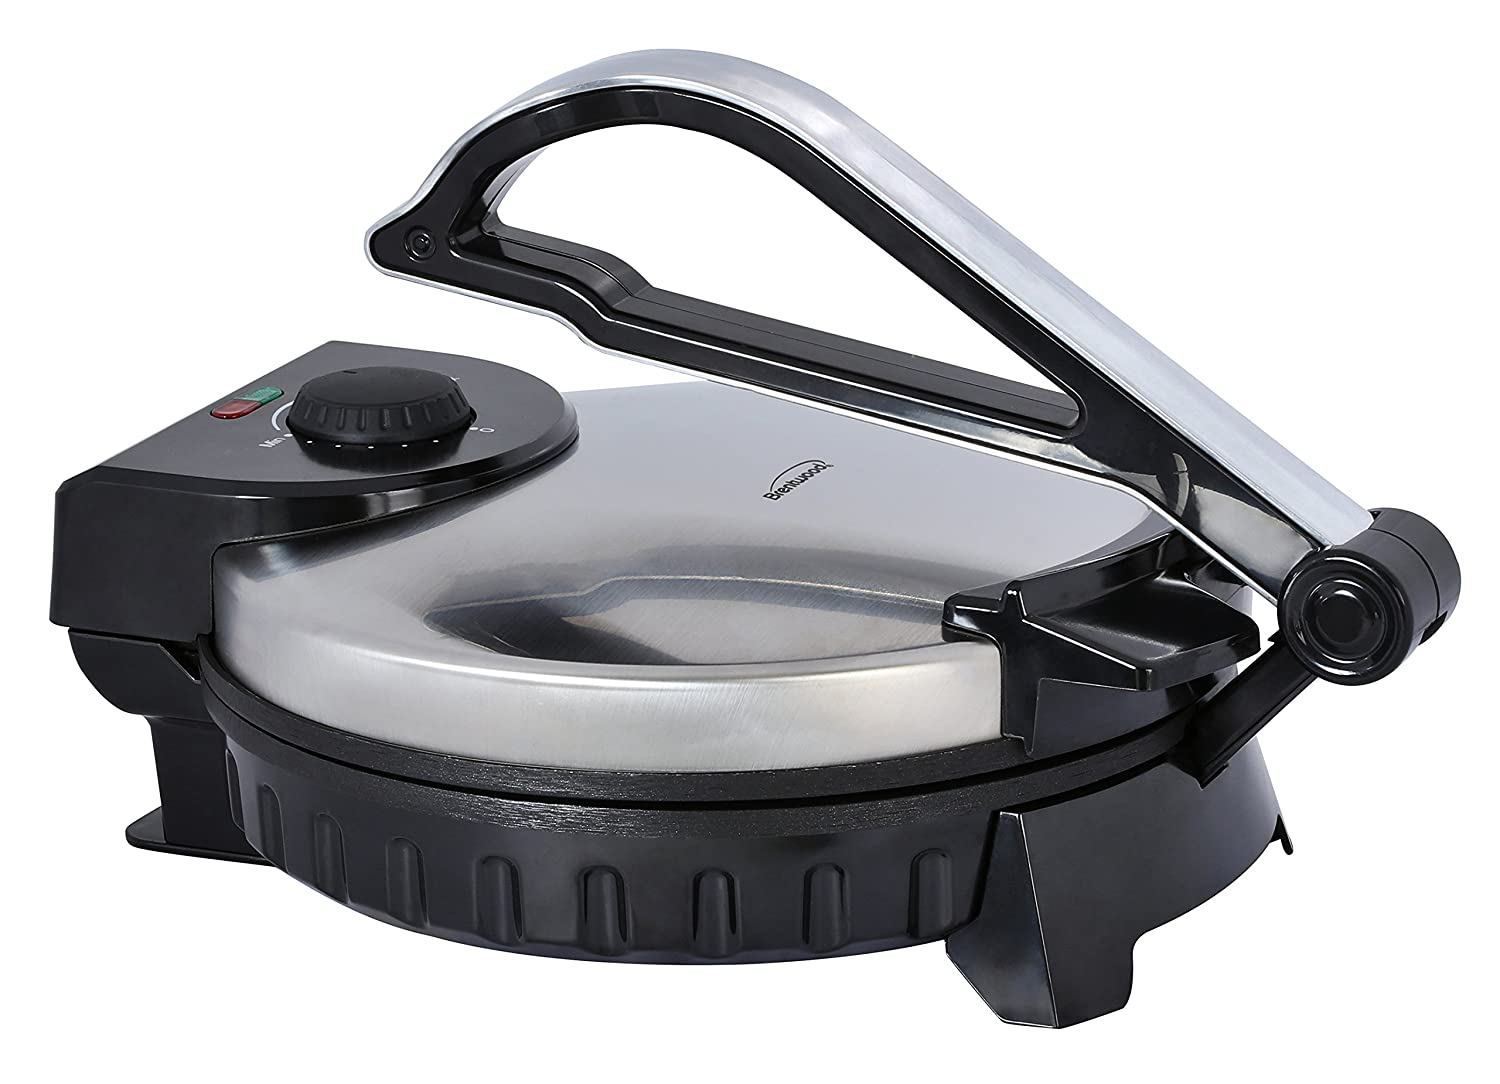 Amazon.com: Brentwood TS-128 Electric Tortilla Press, Silver: Kitchen & Dining